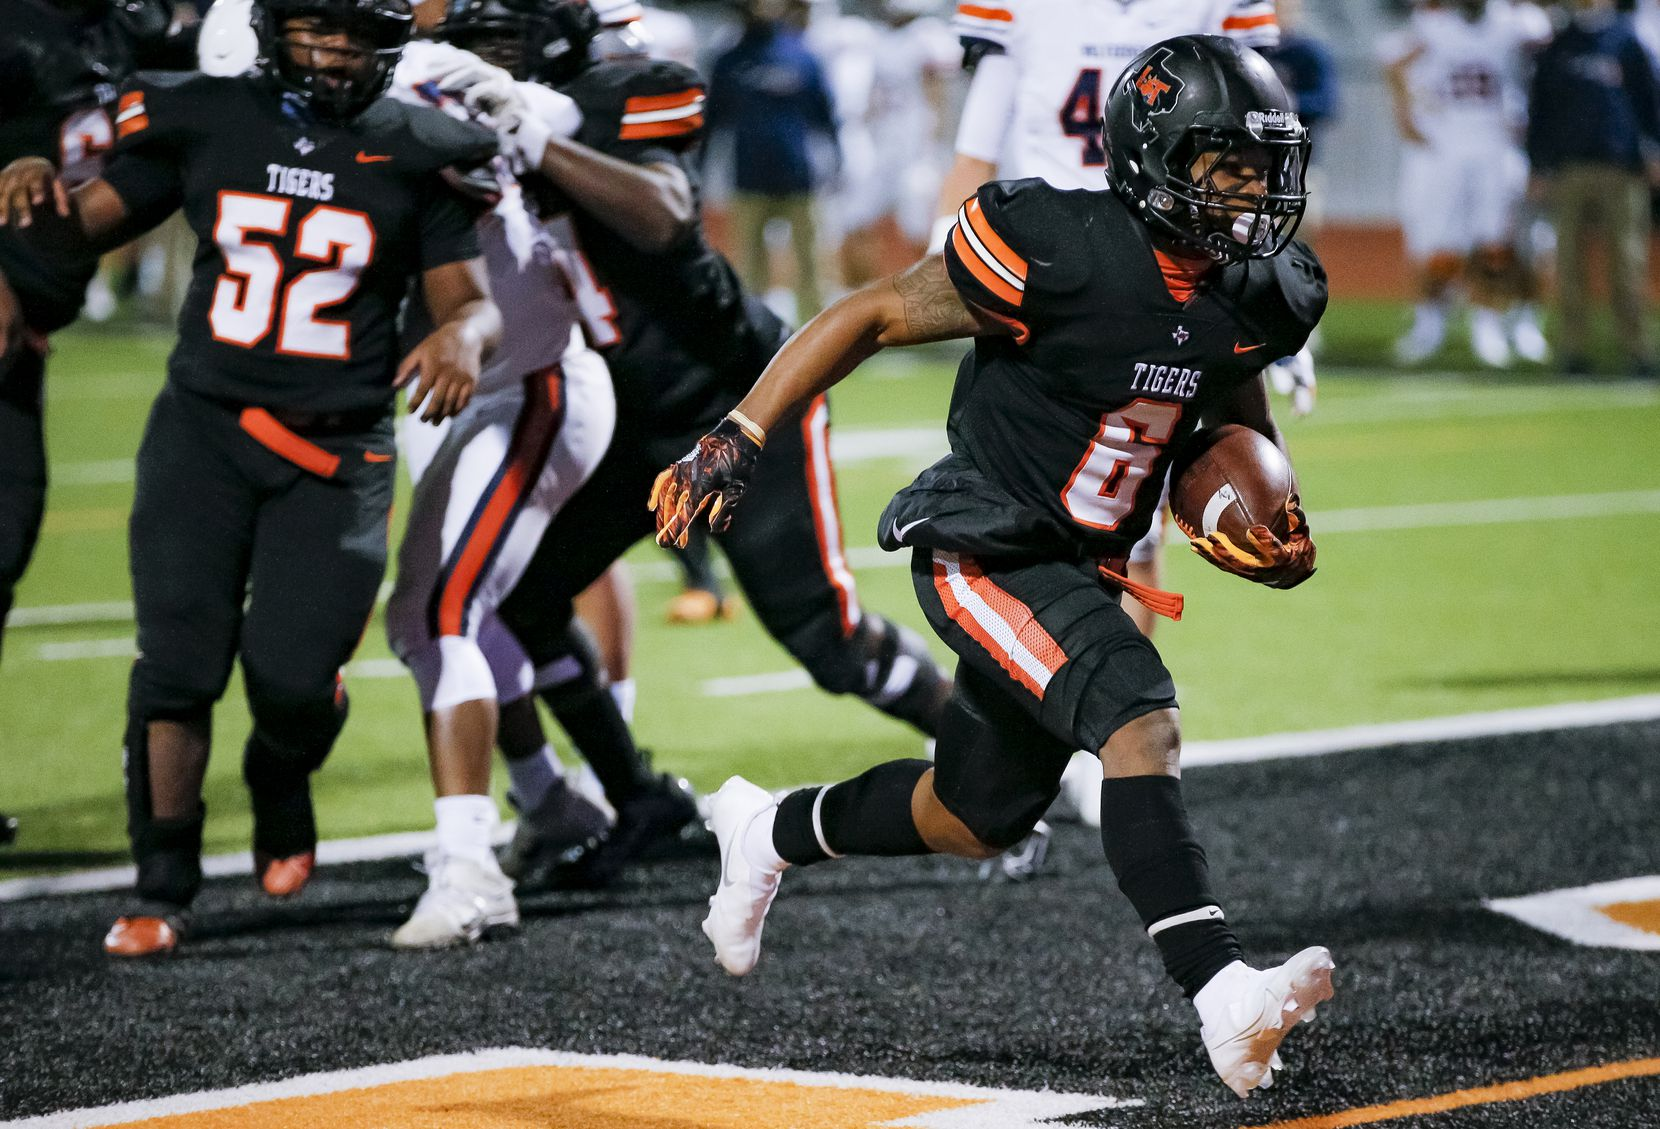 Lancaster senior running back DQ James (6) scores touchdown during the first half of a class 5A Division I bi-district round playoff game against Wakeland at Tiger Stadium in Lancaster, Friday, December 11, 2020.